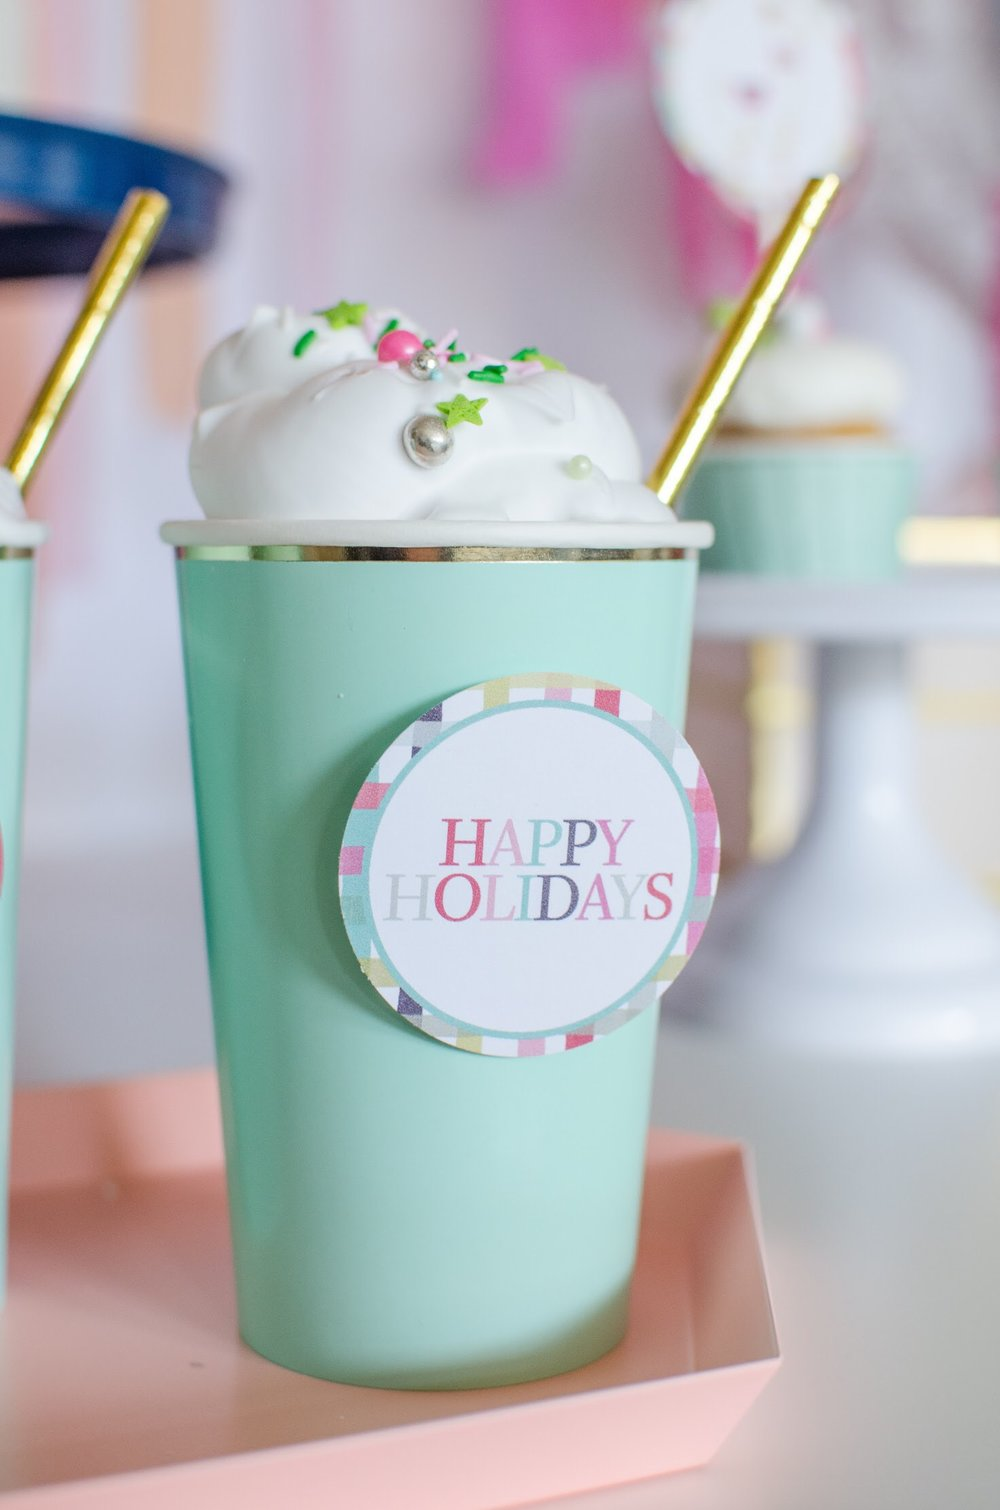 Hot cocoa at holiday parties are must and you can dress up your cups with these free printables from Mint Event Design. See more from this llama Christmas party at www.minteventdesign.com and download your free printables #holidayparty #partyideas #christmasparty #holidaypartyideas #llamaparty #llamalove #partyprintables #freeprintables